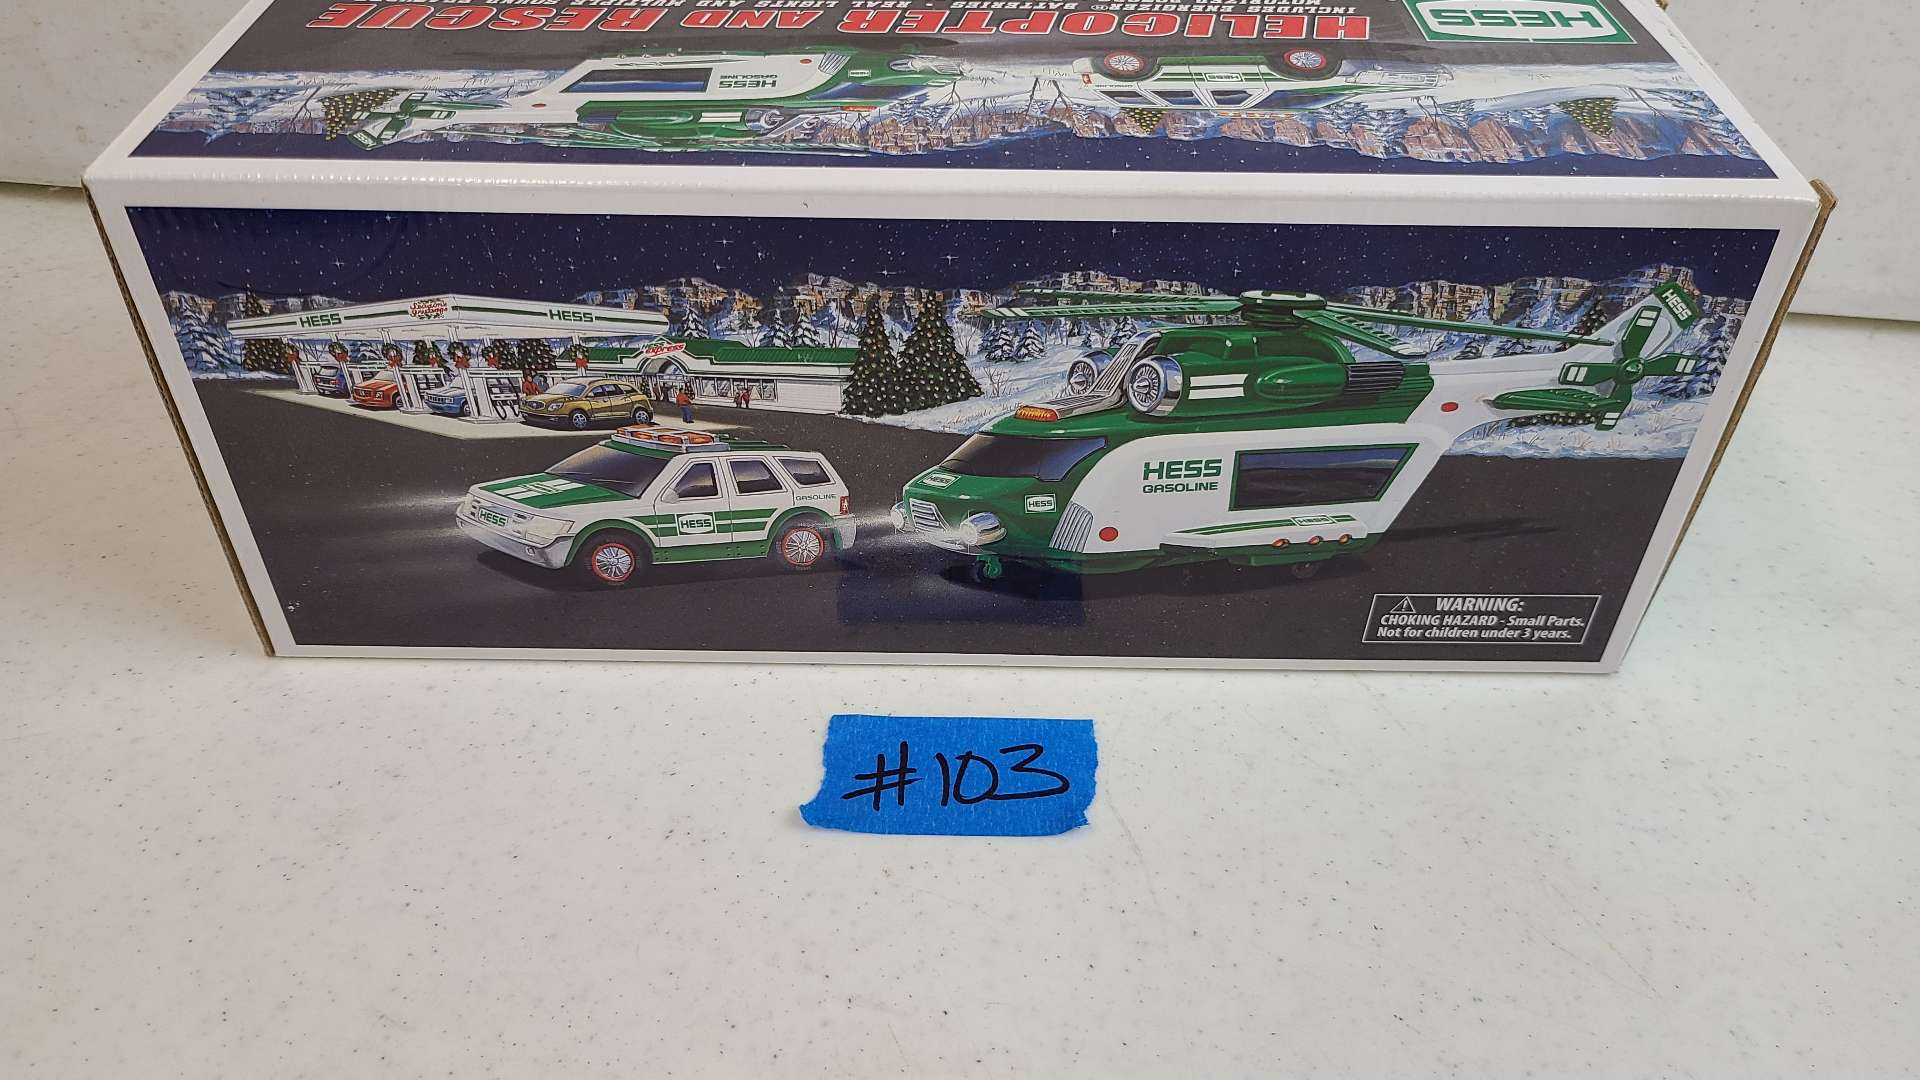 Lot # 103 HESS Helicopter & Rescue Vehicle-Still In Box